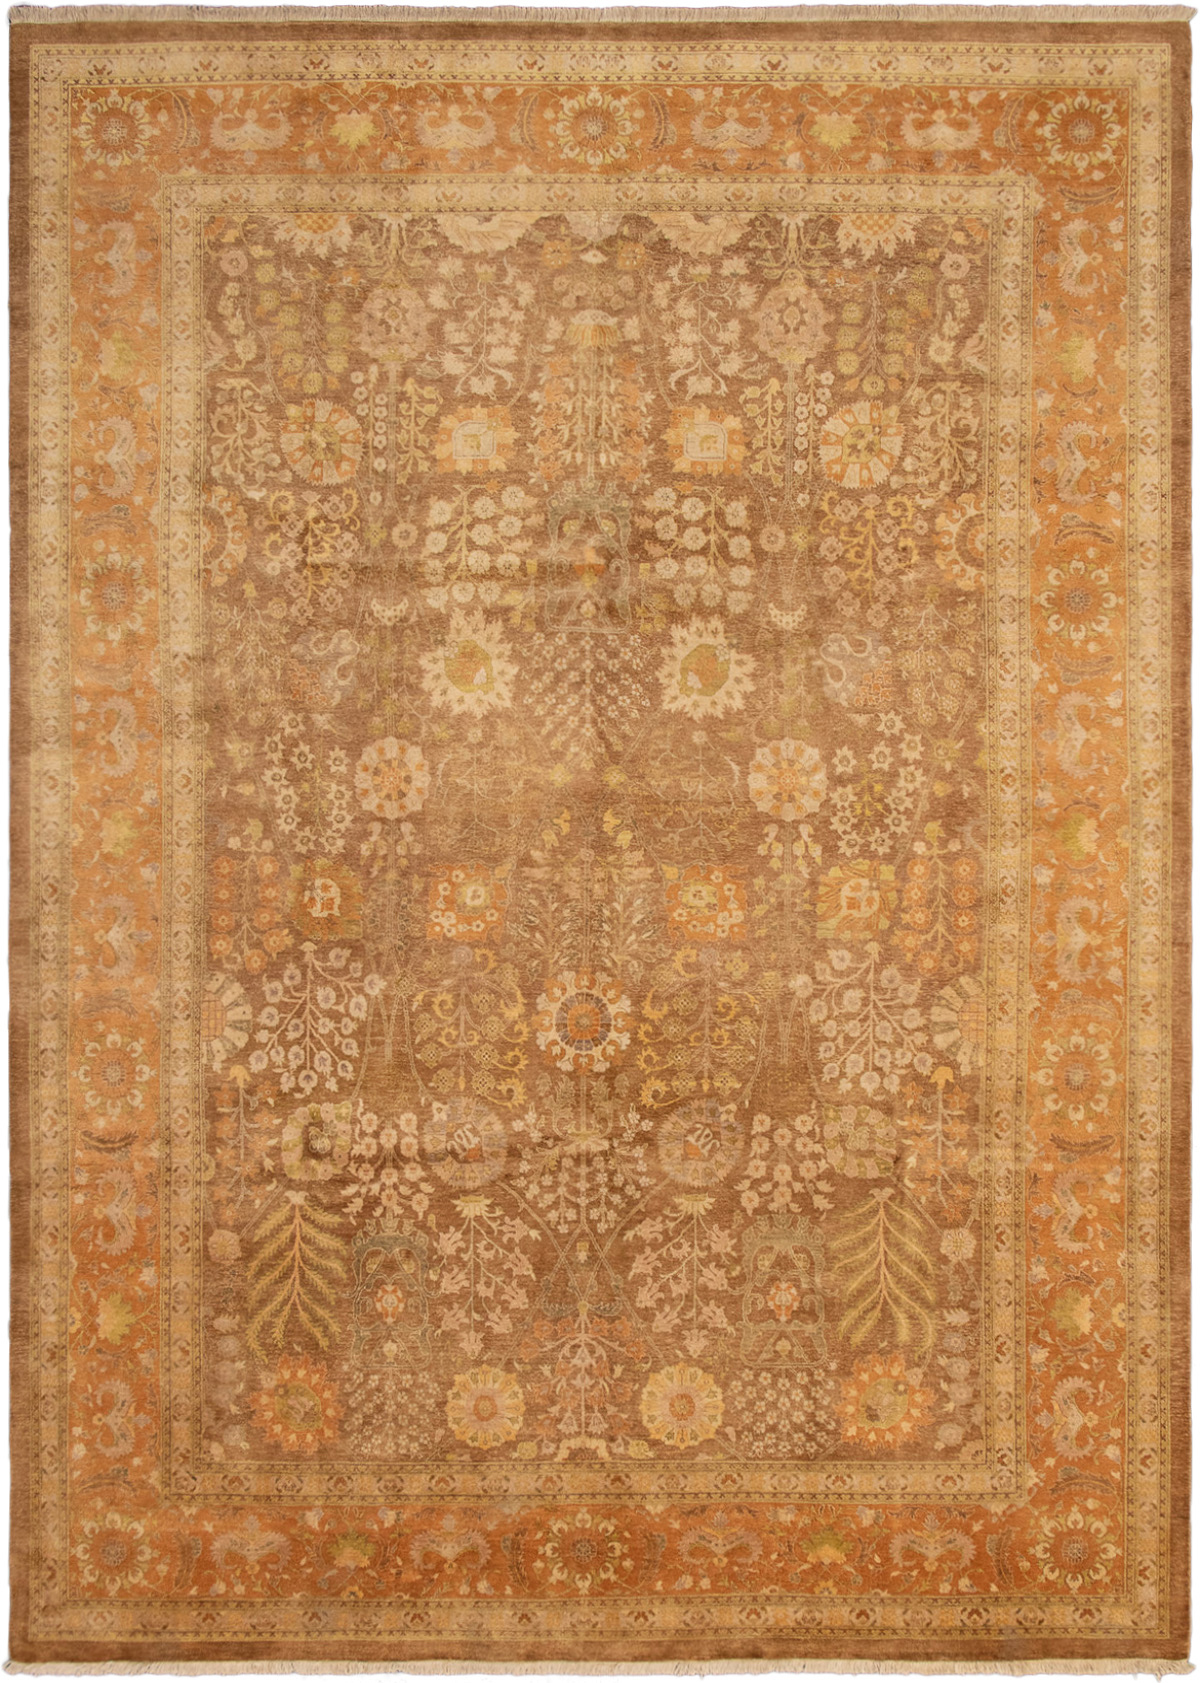 """Hand-knotted Pako Persian 18/20 Brown Wool Rug 9'10"""" x 14'0"""" Size: 9'10"""" x 14'0"""""""